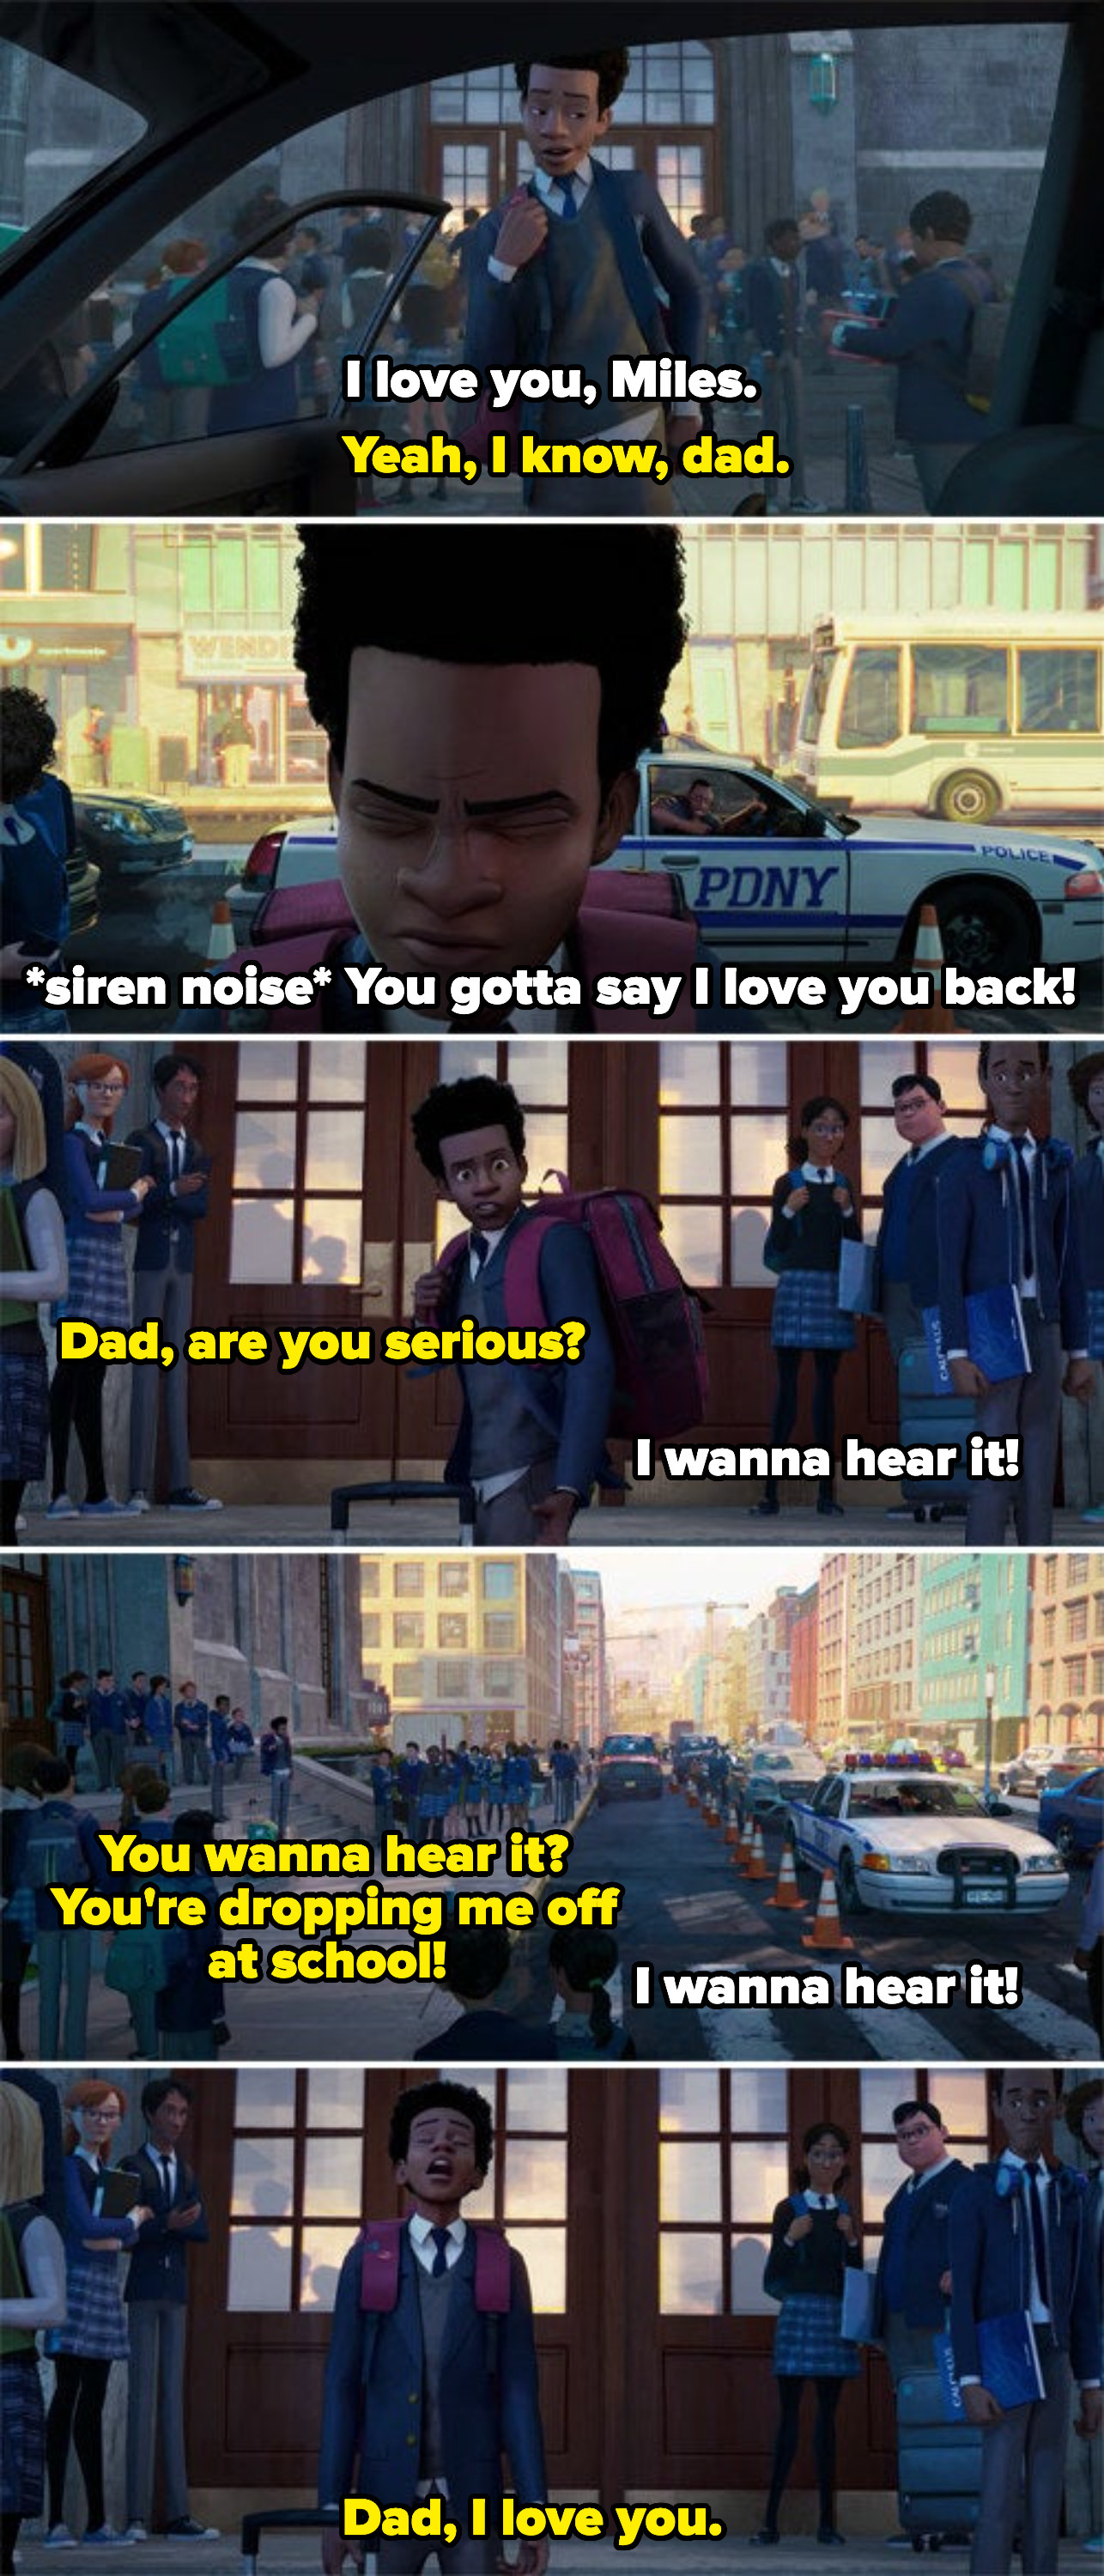 Miles's dad sounding the police siren because Miles didn't say I love you, and bugging him in front of the whole school until he says it